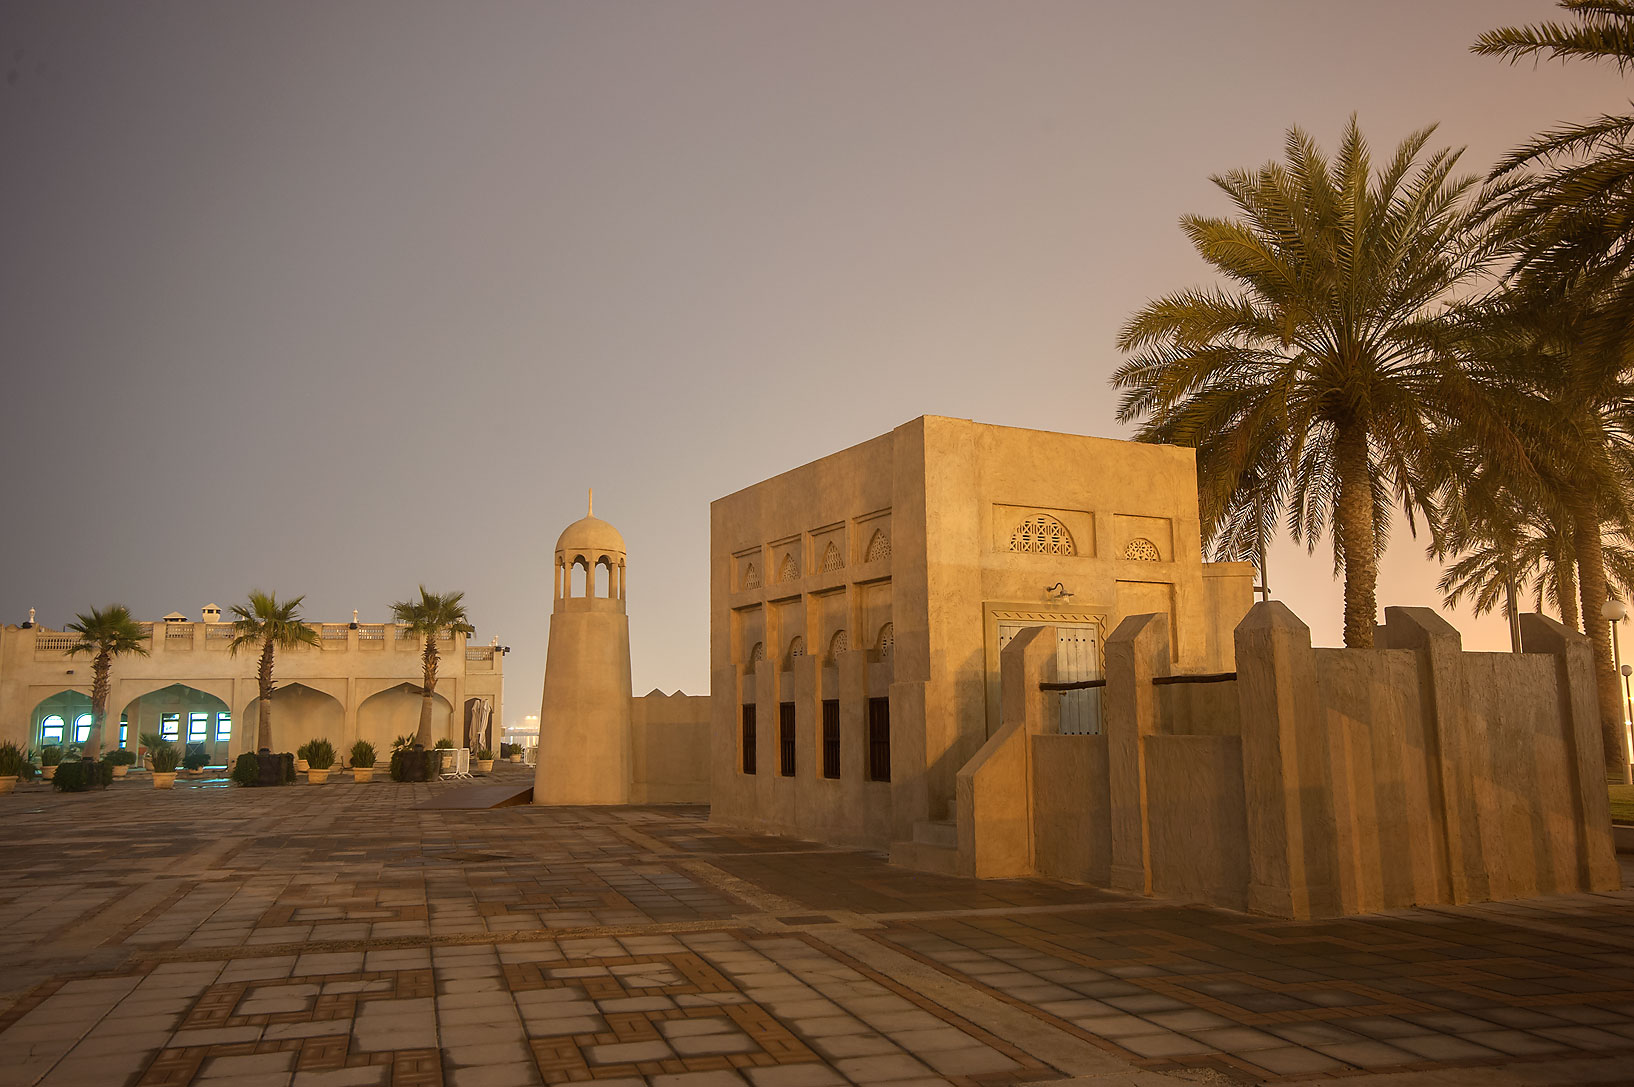 Recently built historical village with a fake...on Corniche Promenade. Doha, Qatar